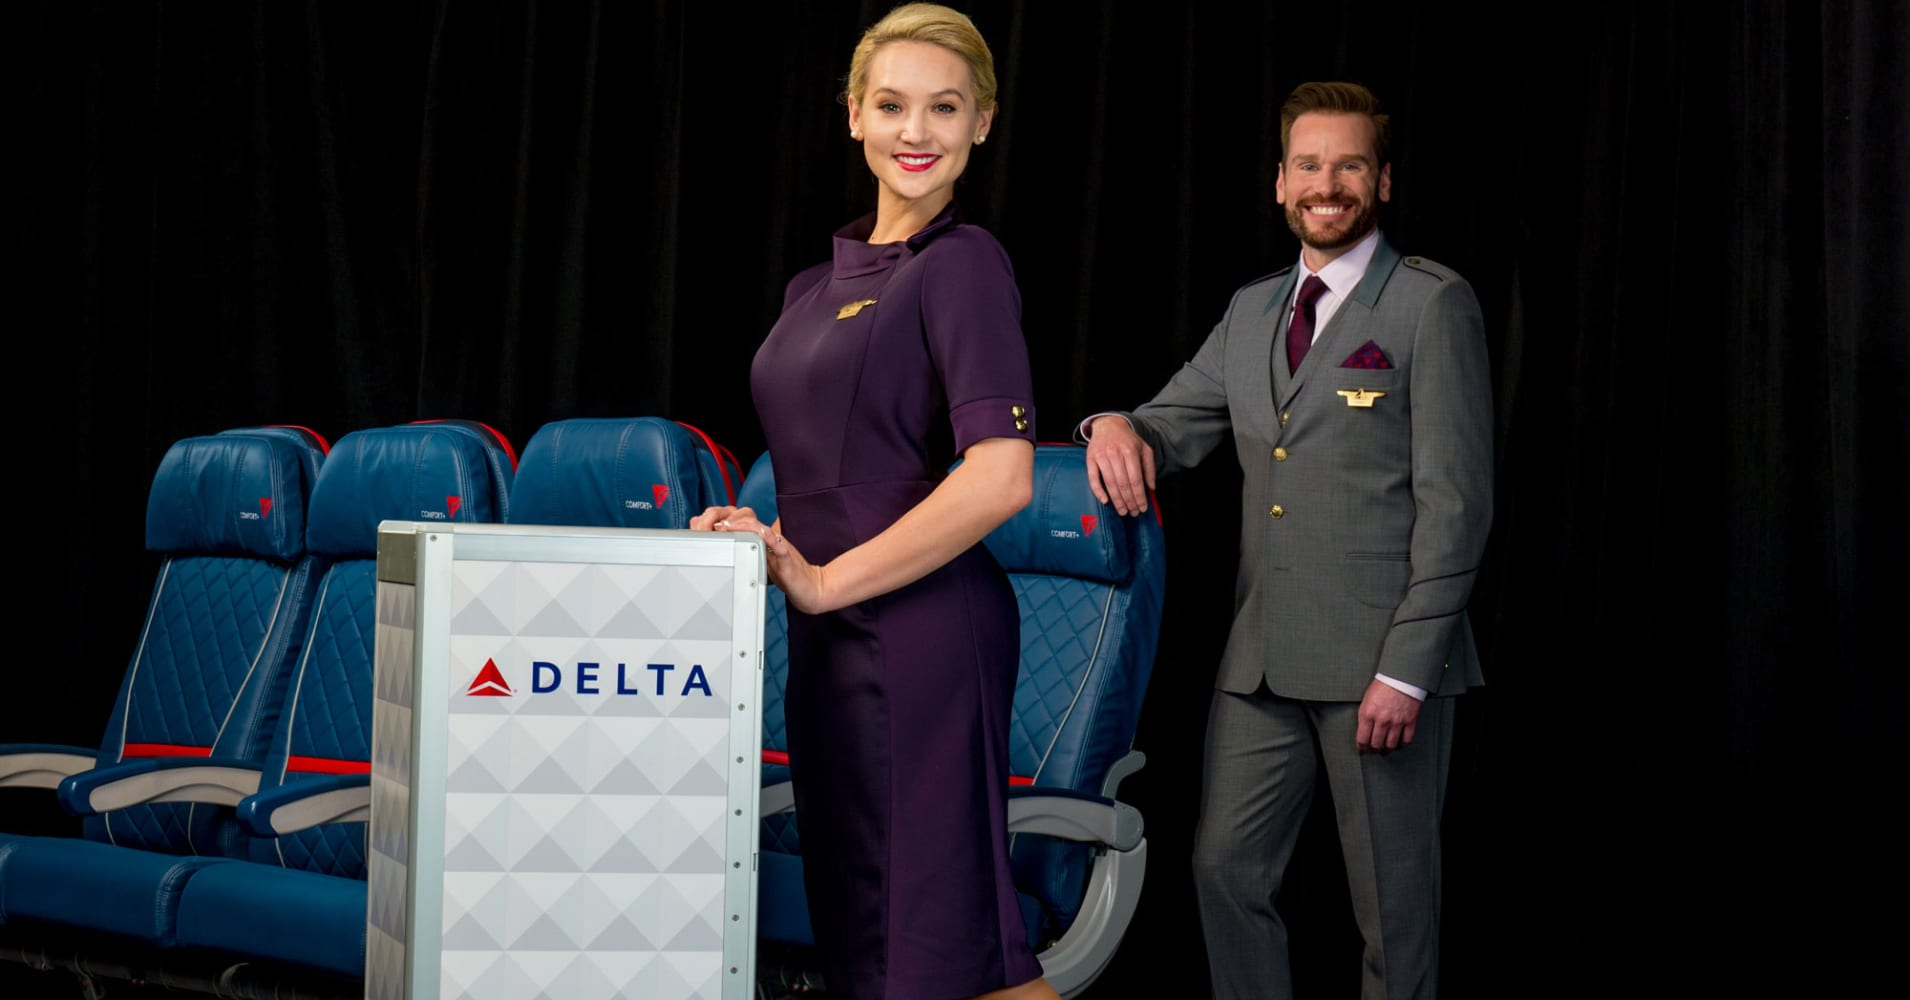 Delta S Zac Posen Uniforms Unveiled